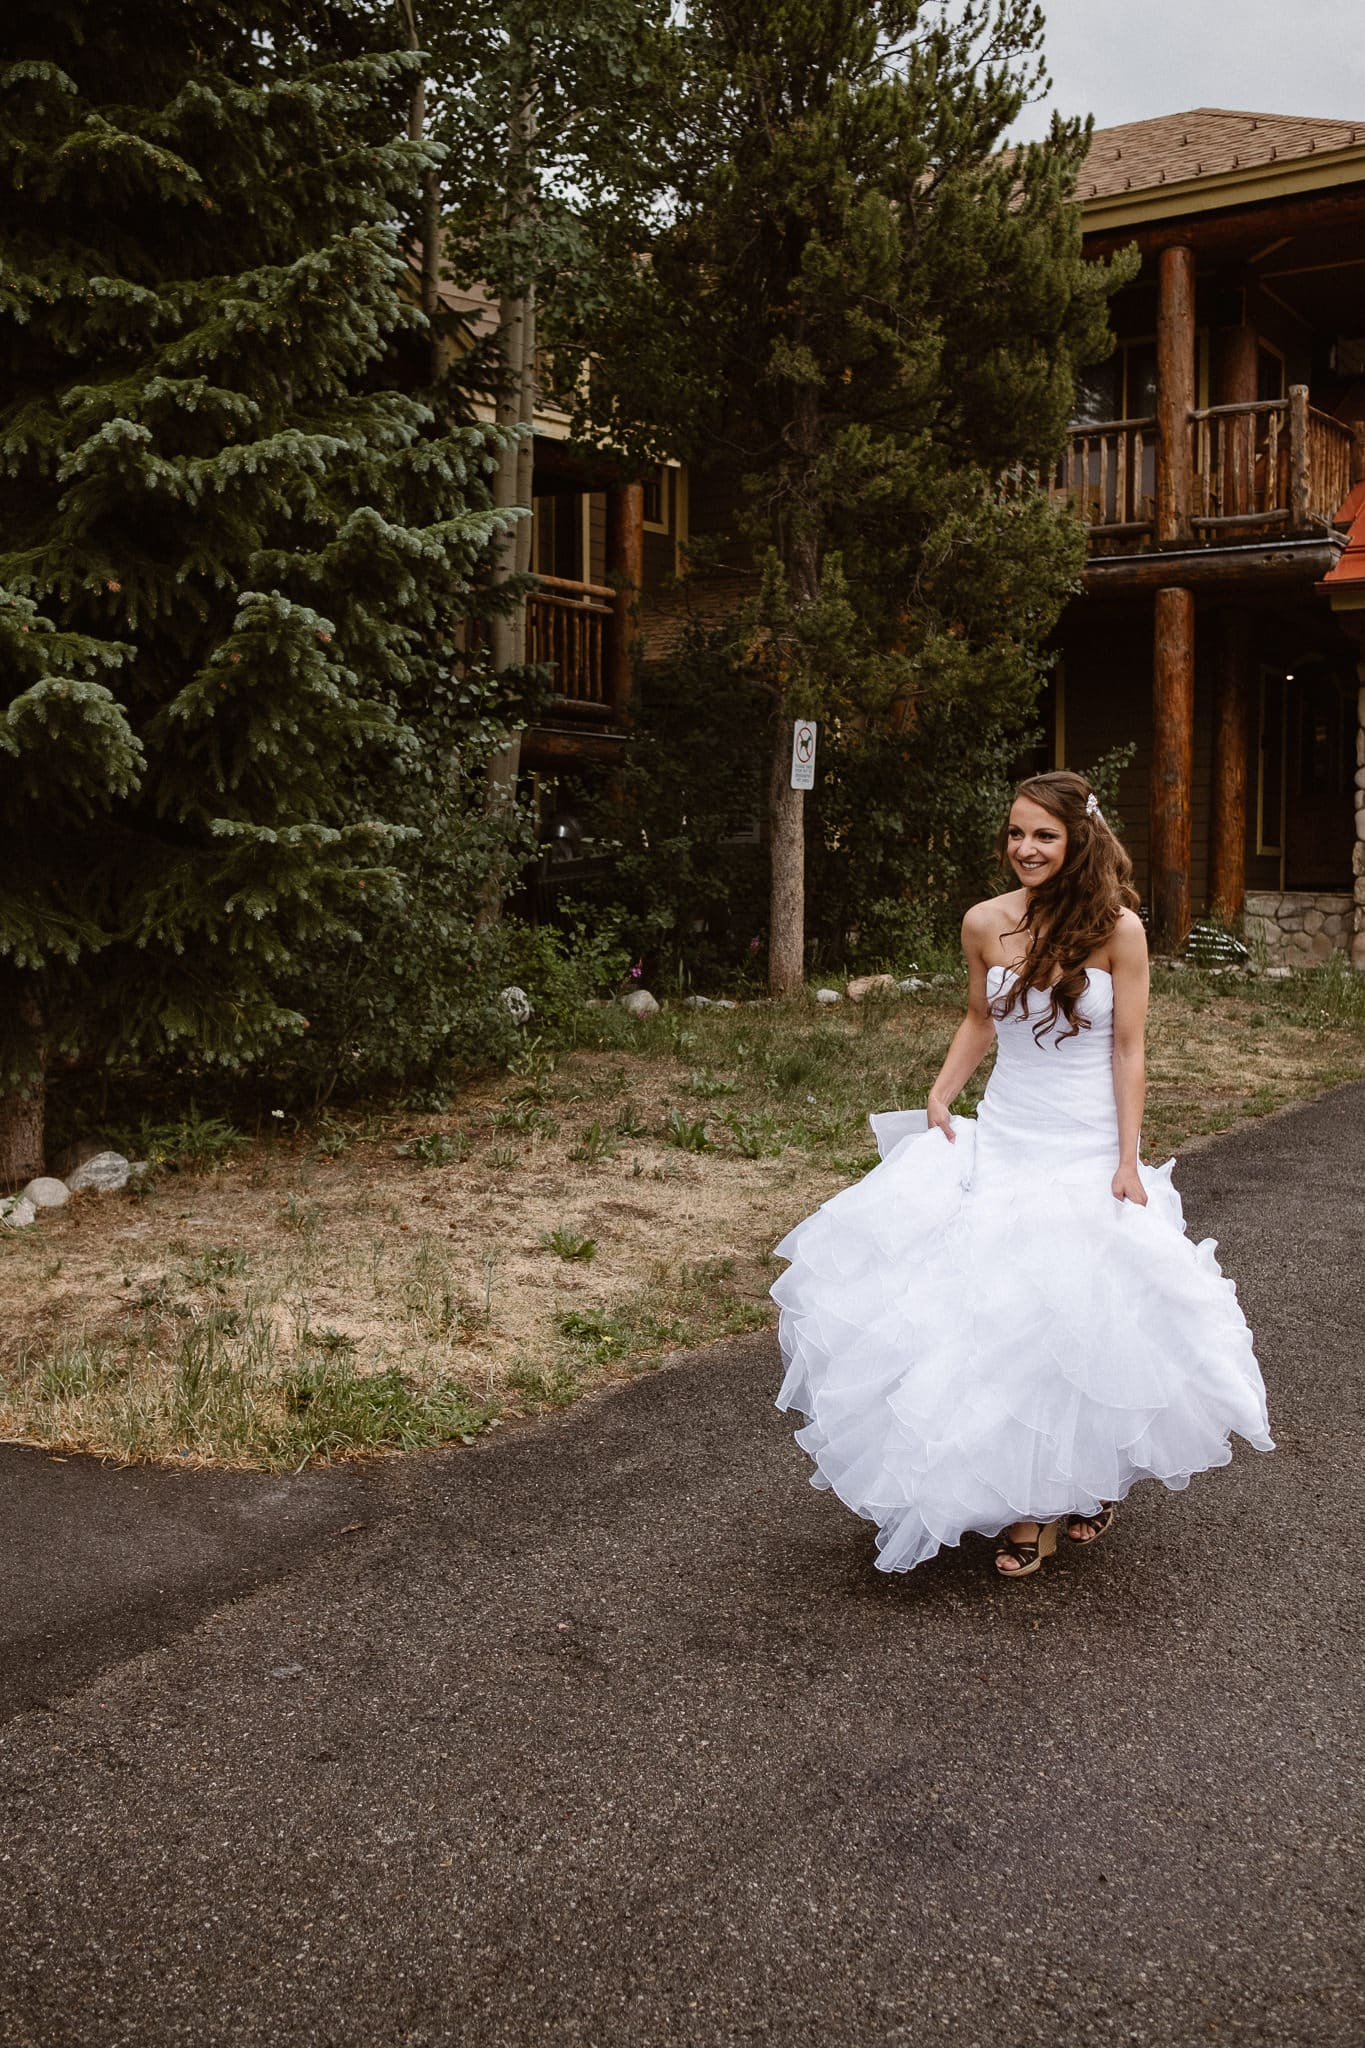 Bride walking up to groom at their first look at The Lodge at Breckenridge wedding.